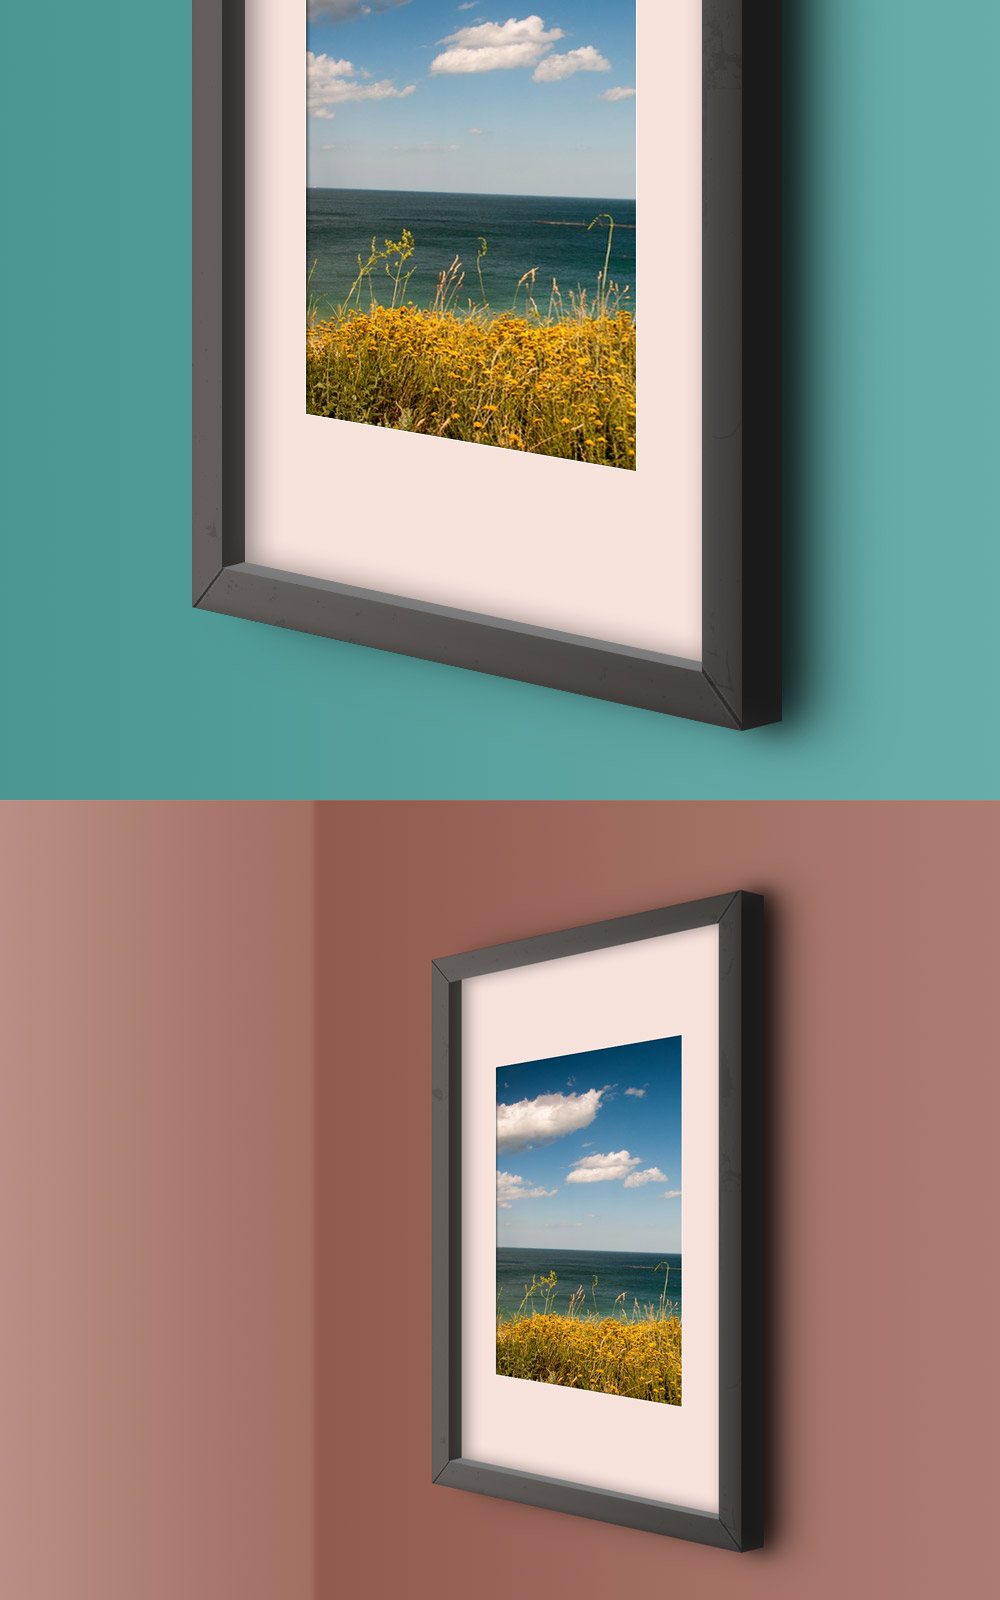 http://www.graphicsfuel.com/wp-content/uploads/2015/05/wall-photo-frame-mockup.jpg